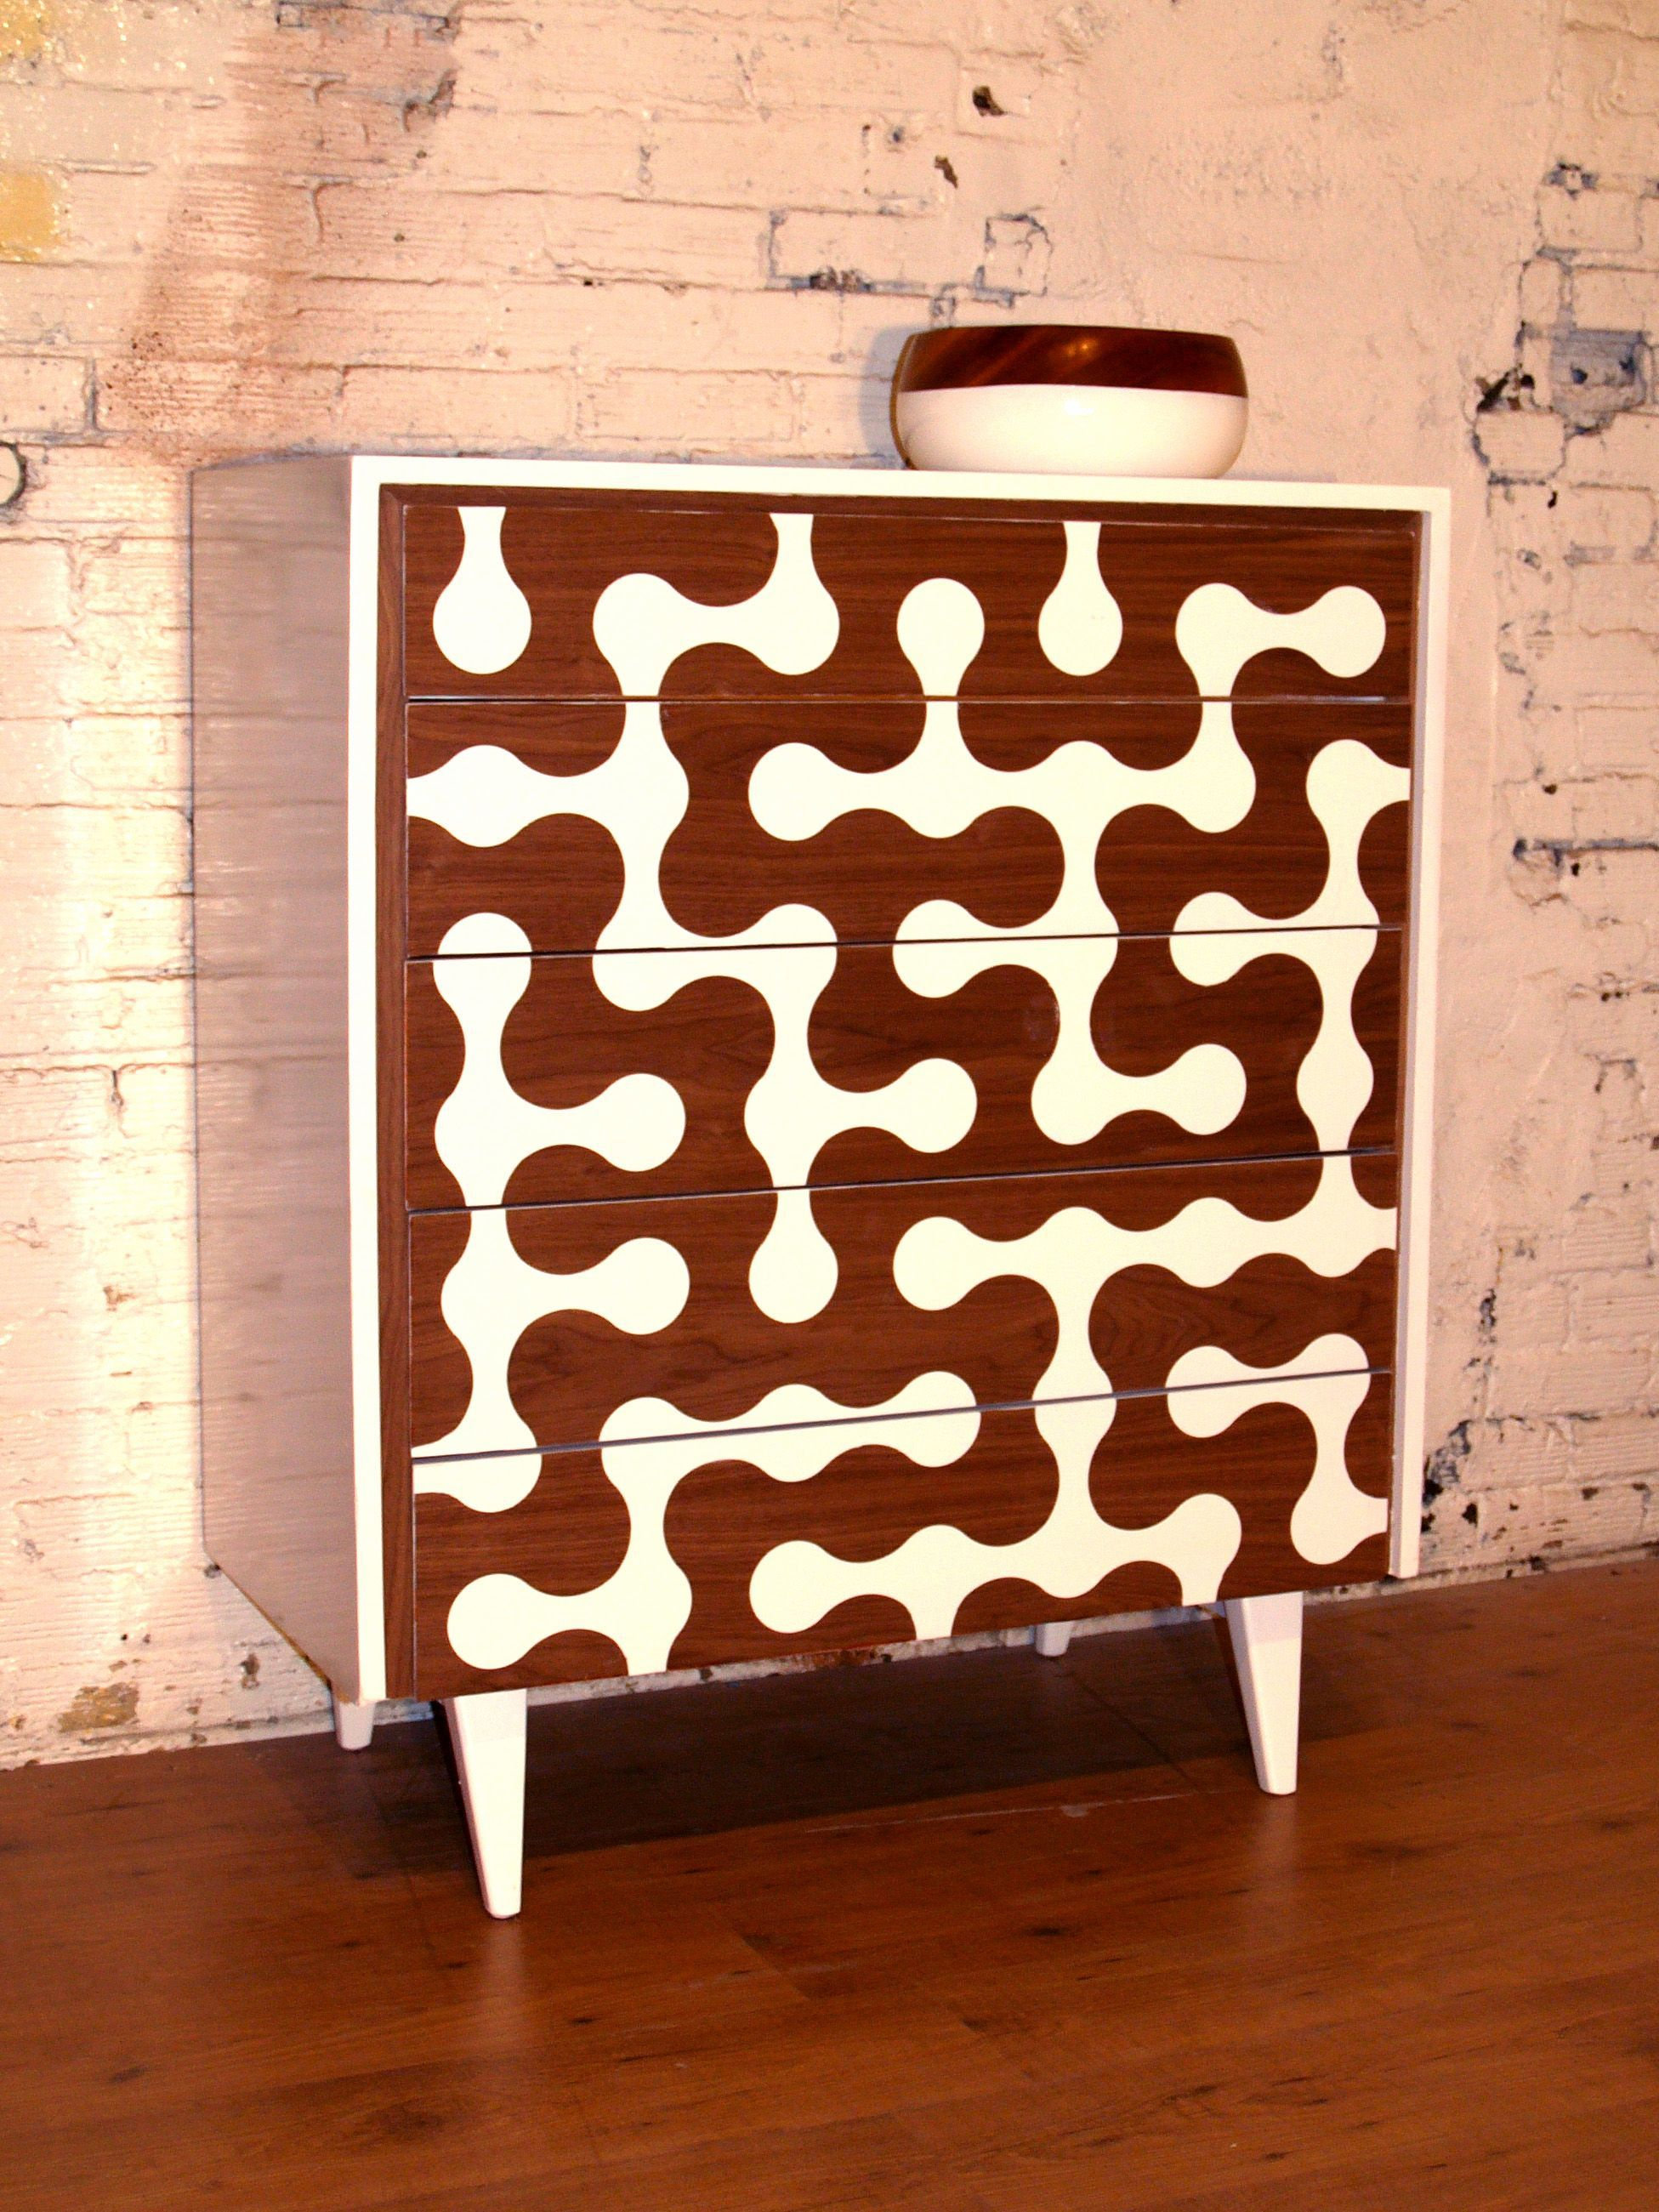 1949 never looked this electric Revamped highboy dresser in walnut 038 white lacquer Available at Om 1949 never looked this electric Revamped highboy dresser in walnut 03...